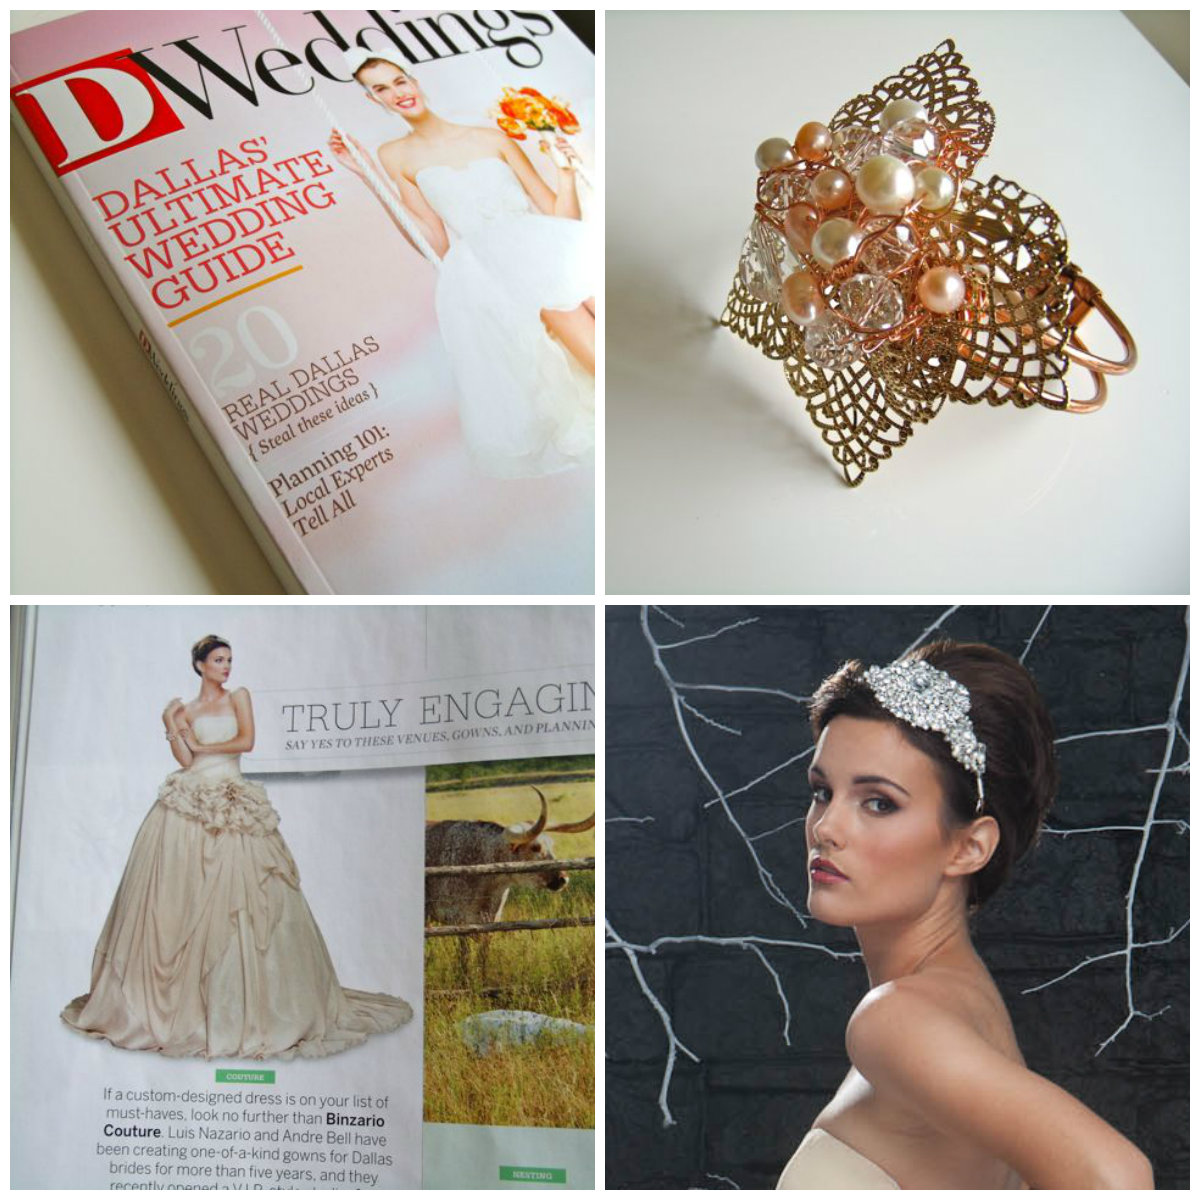 {Red-i} By Chelsea featured in DWeddings Magazine!